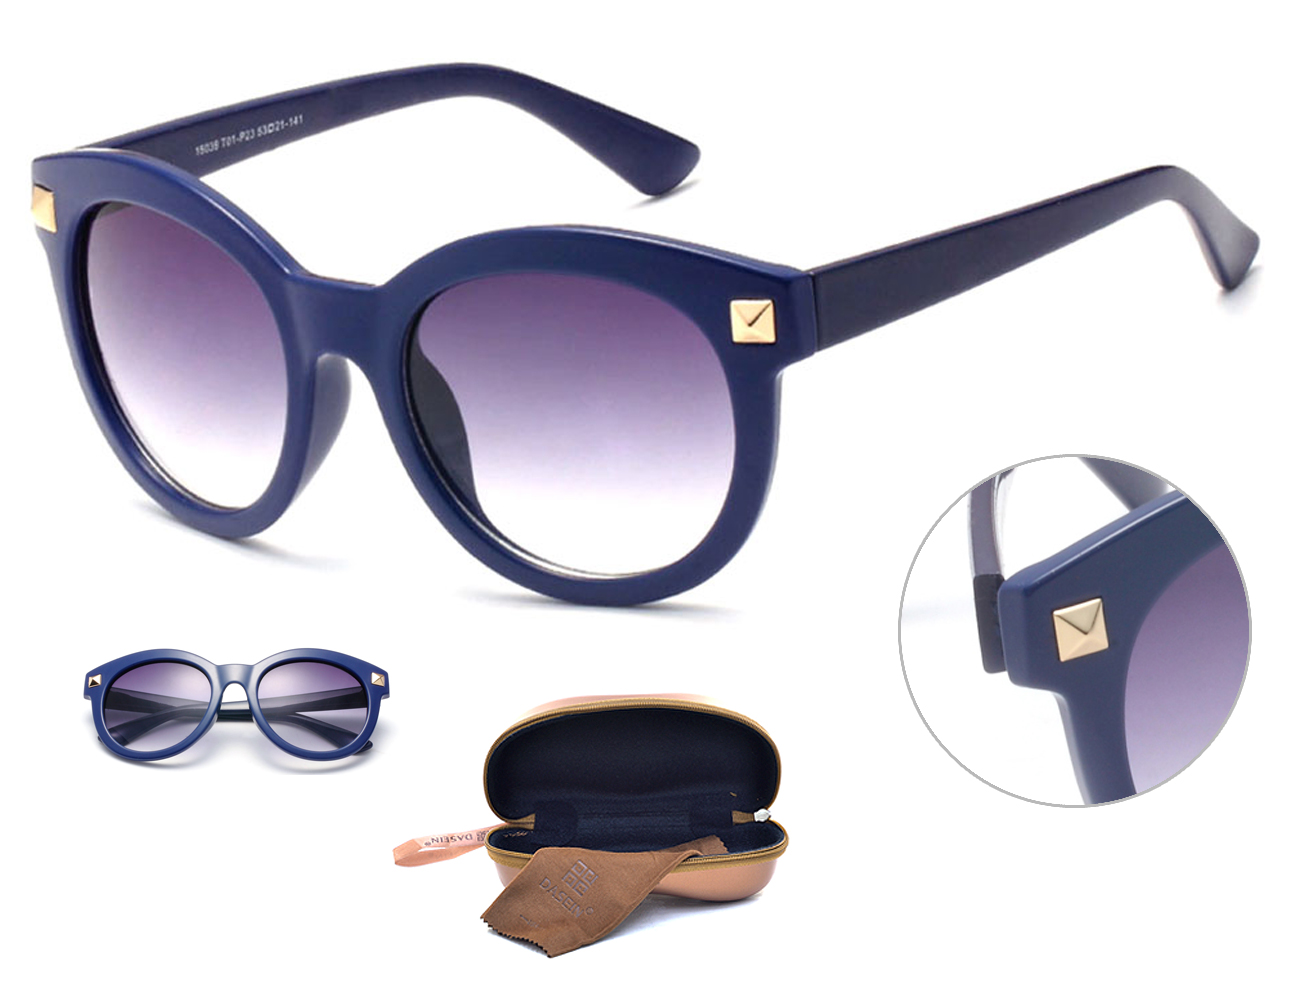 Urban Wayfarer Sunglasses